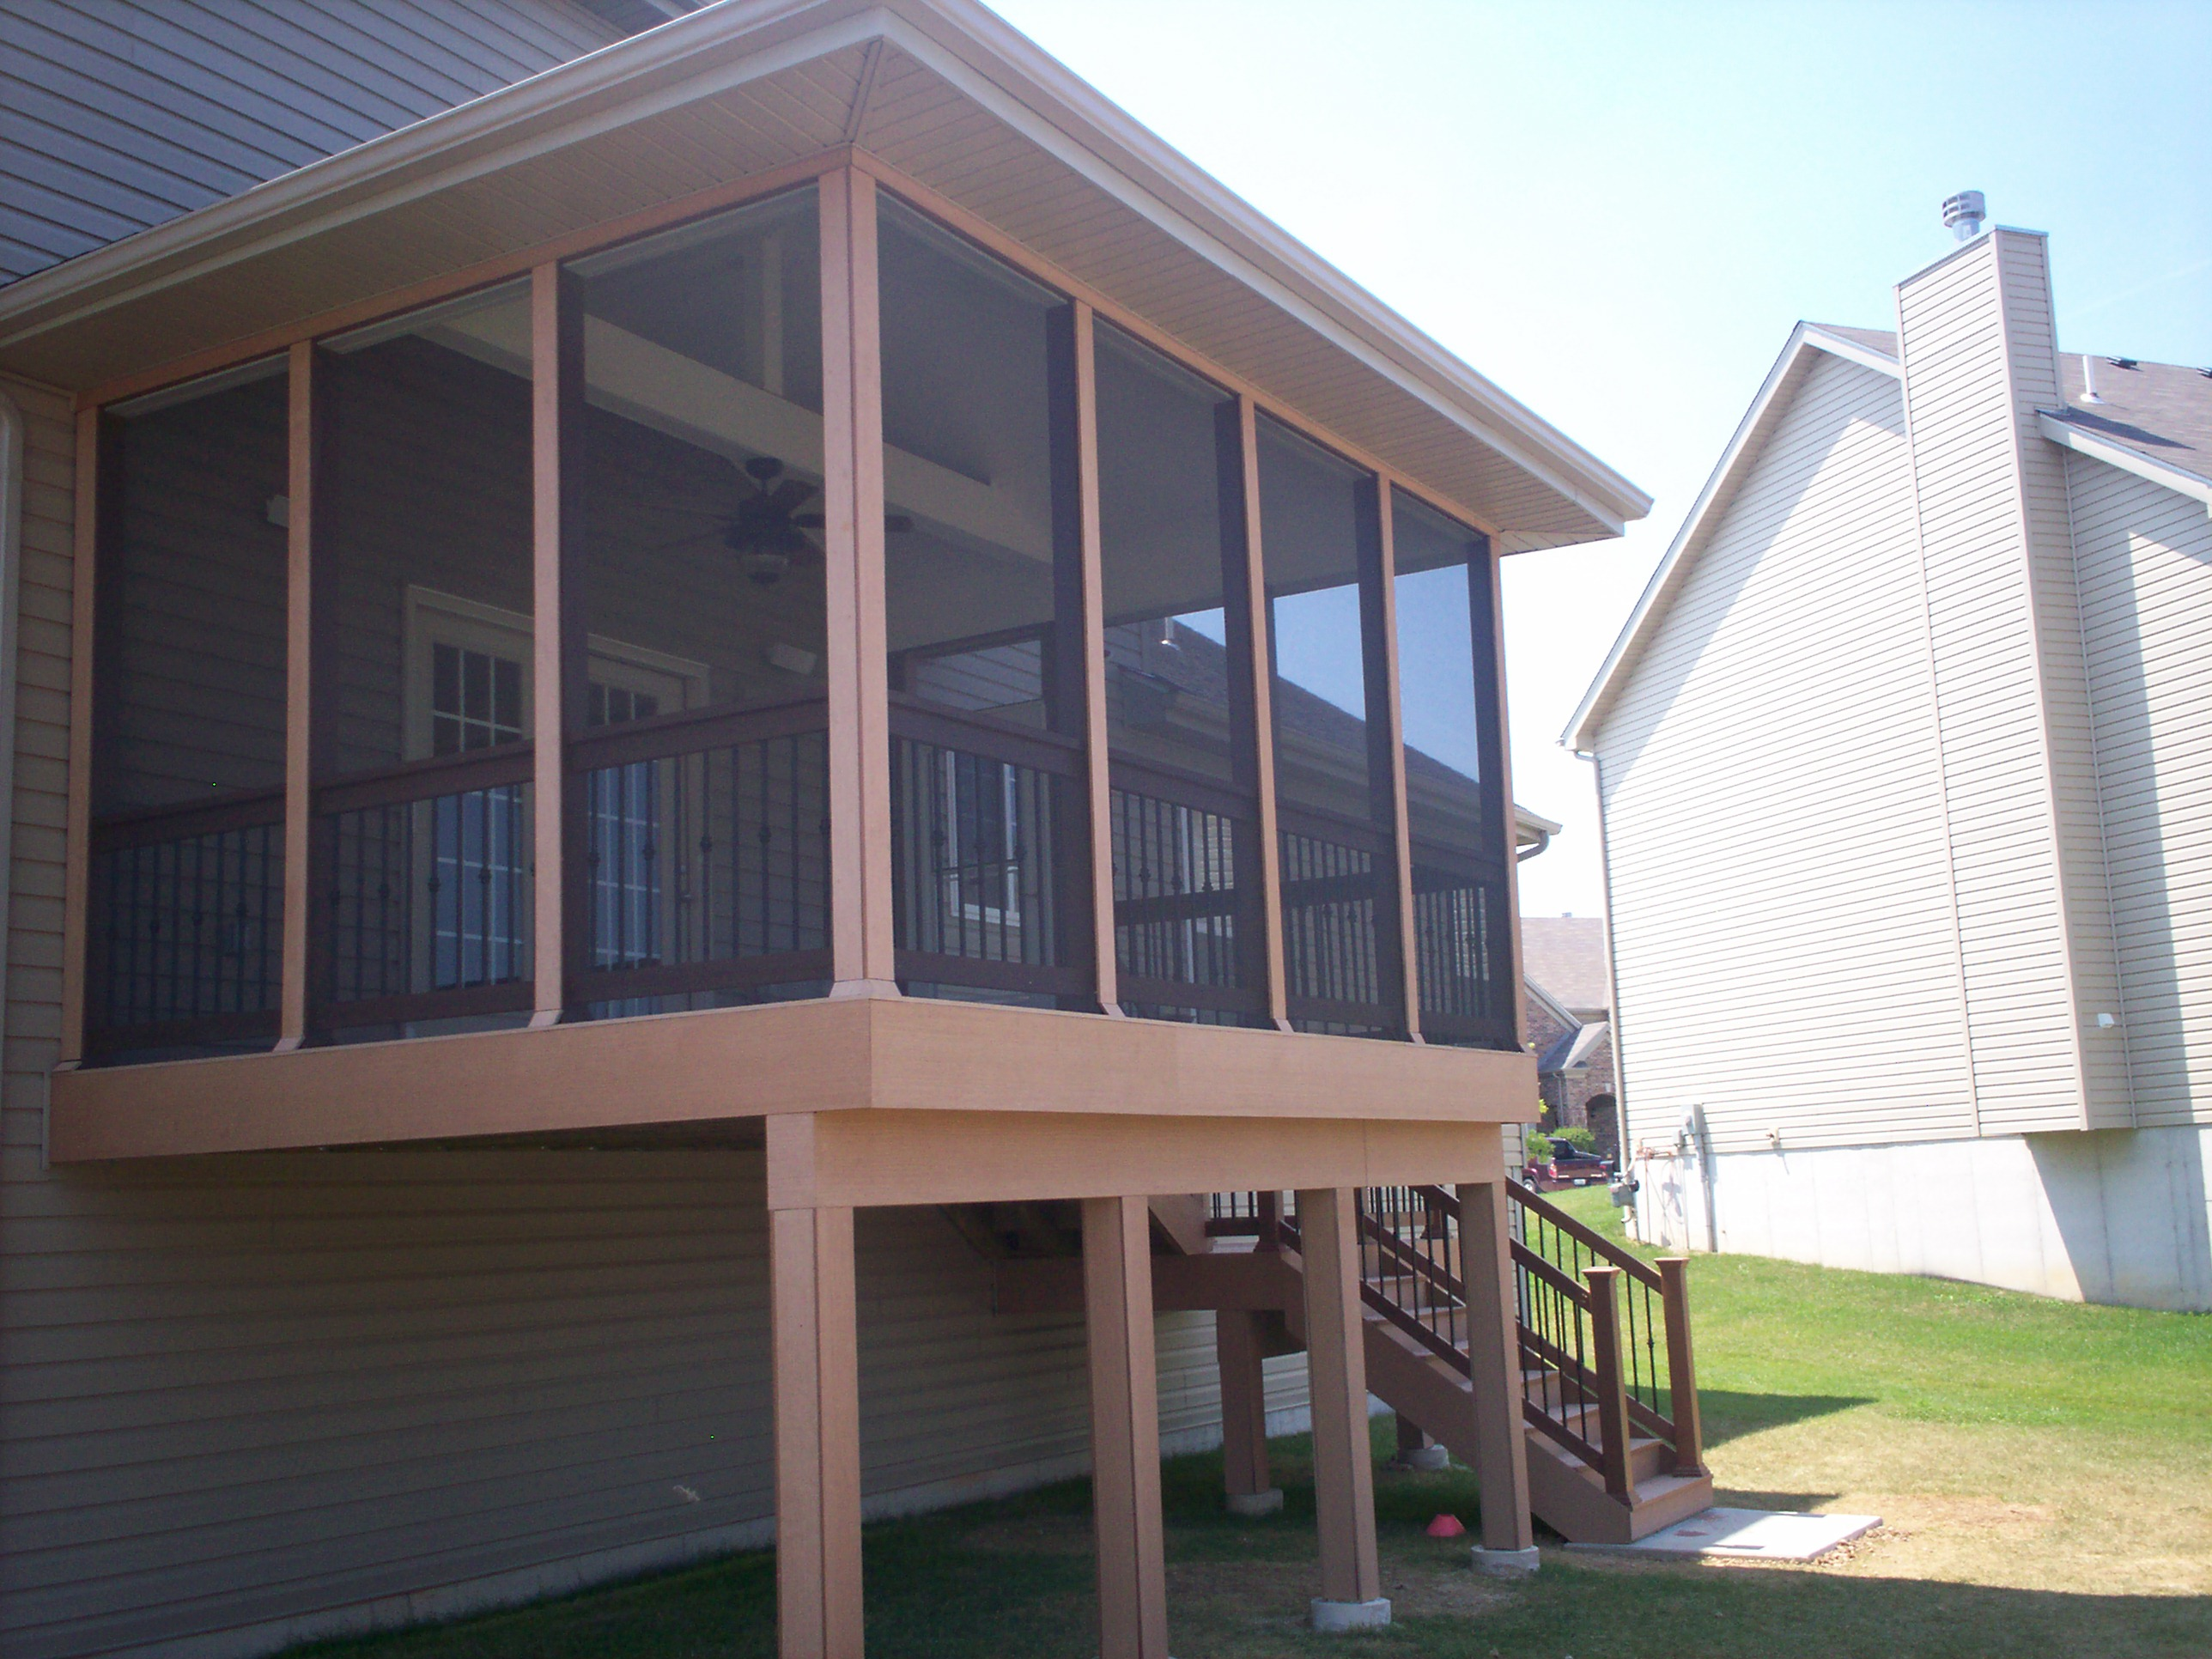 Deck designs with a screened porch st louis decks screened porches pergolas by archadeck Screened porch plans designs